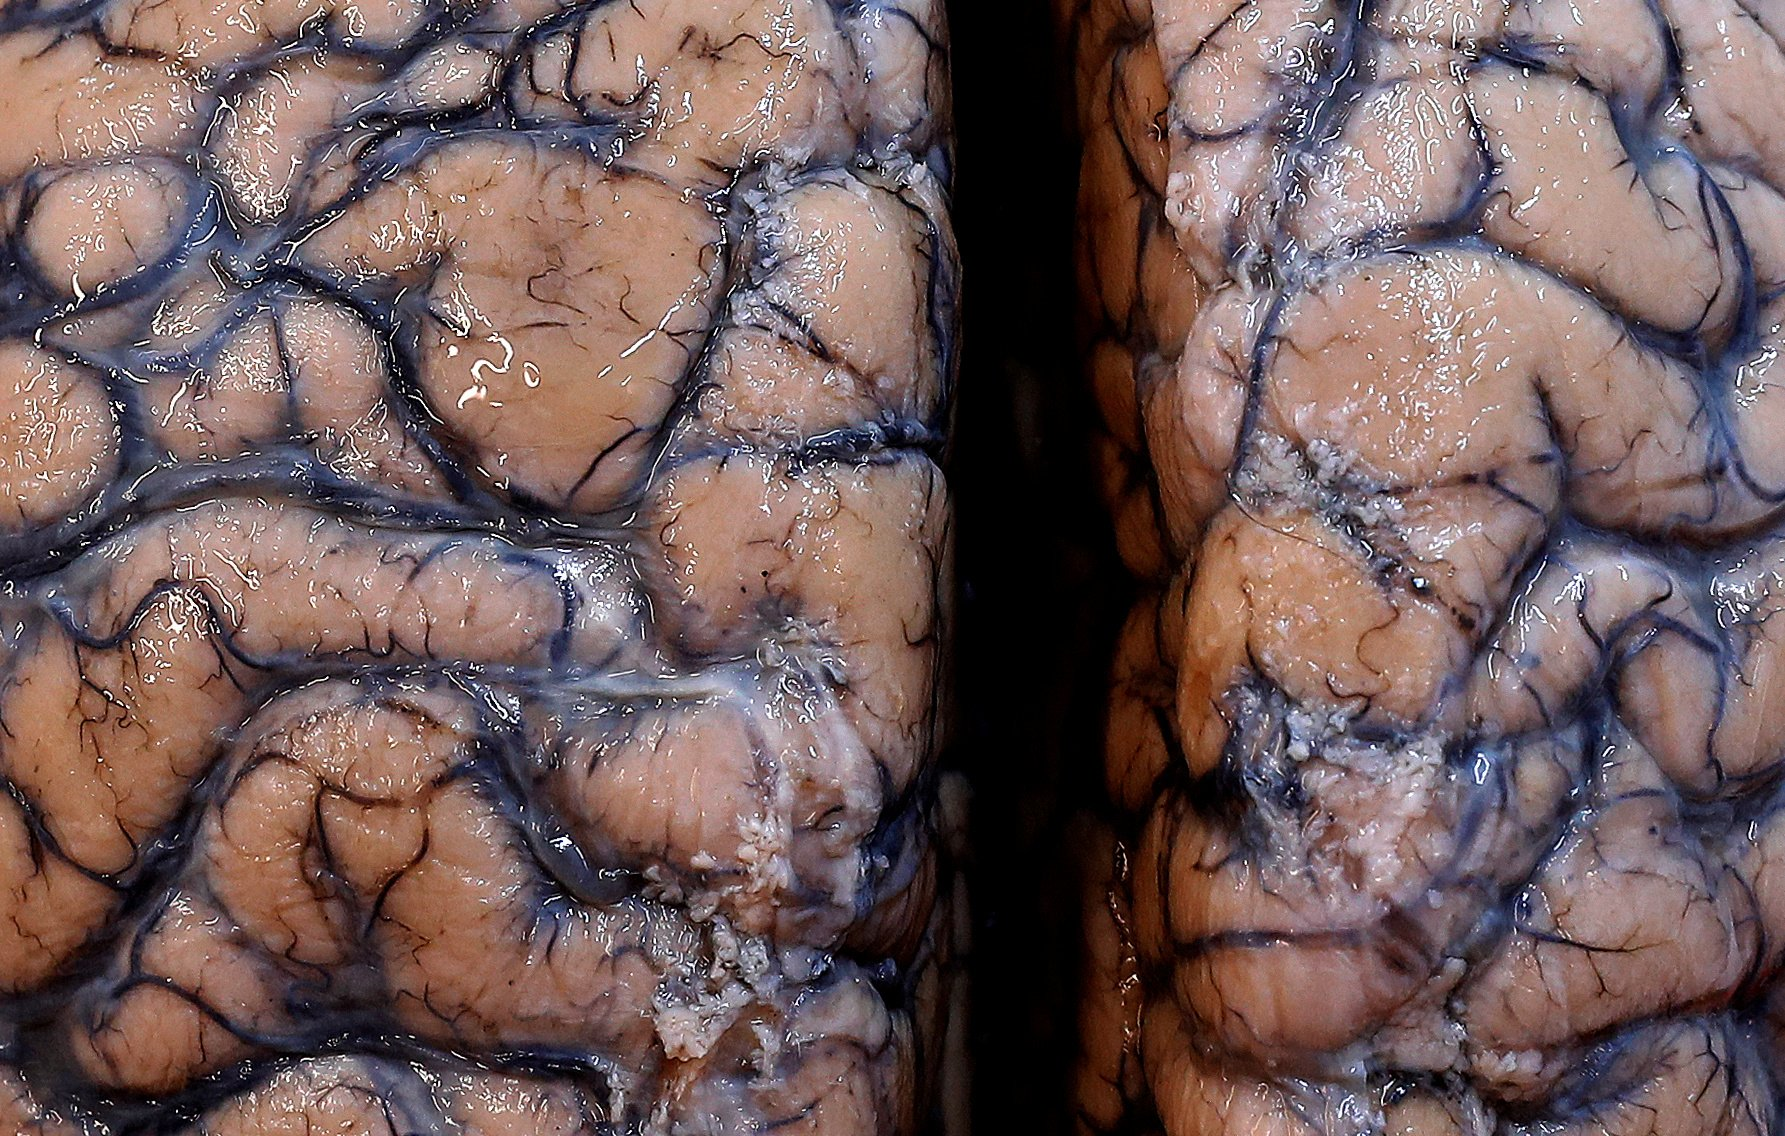 A human brain, part of a collection of more than 3,000 brains that could provide insight into psychiatric diseases, is seen at the psychiatric hospital in Duffel, Belgium, July 19, 2017. (REUTERS Photo)